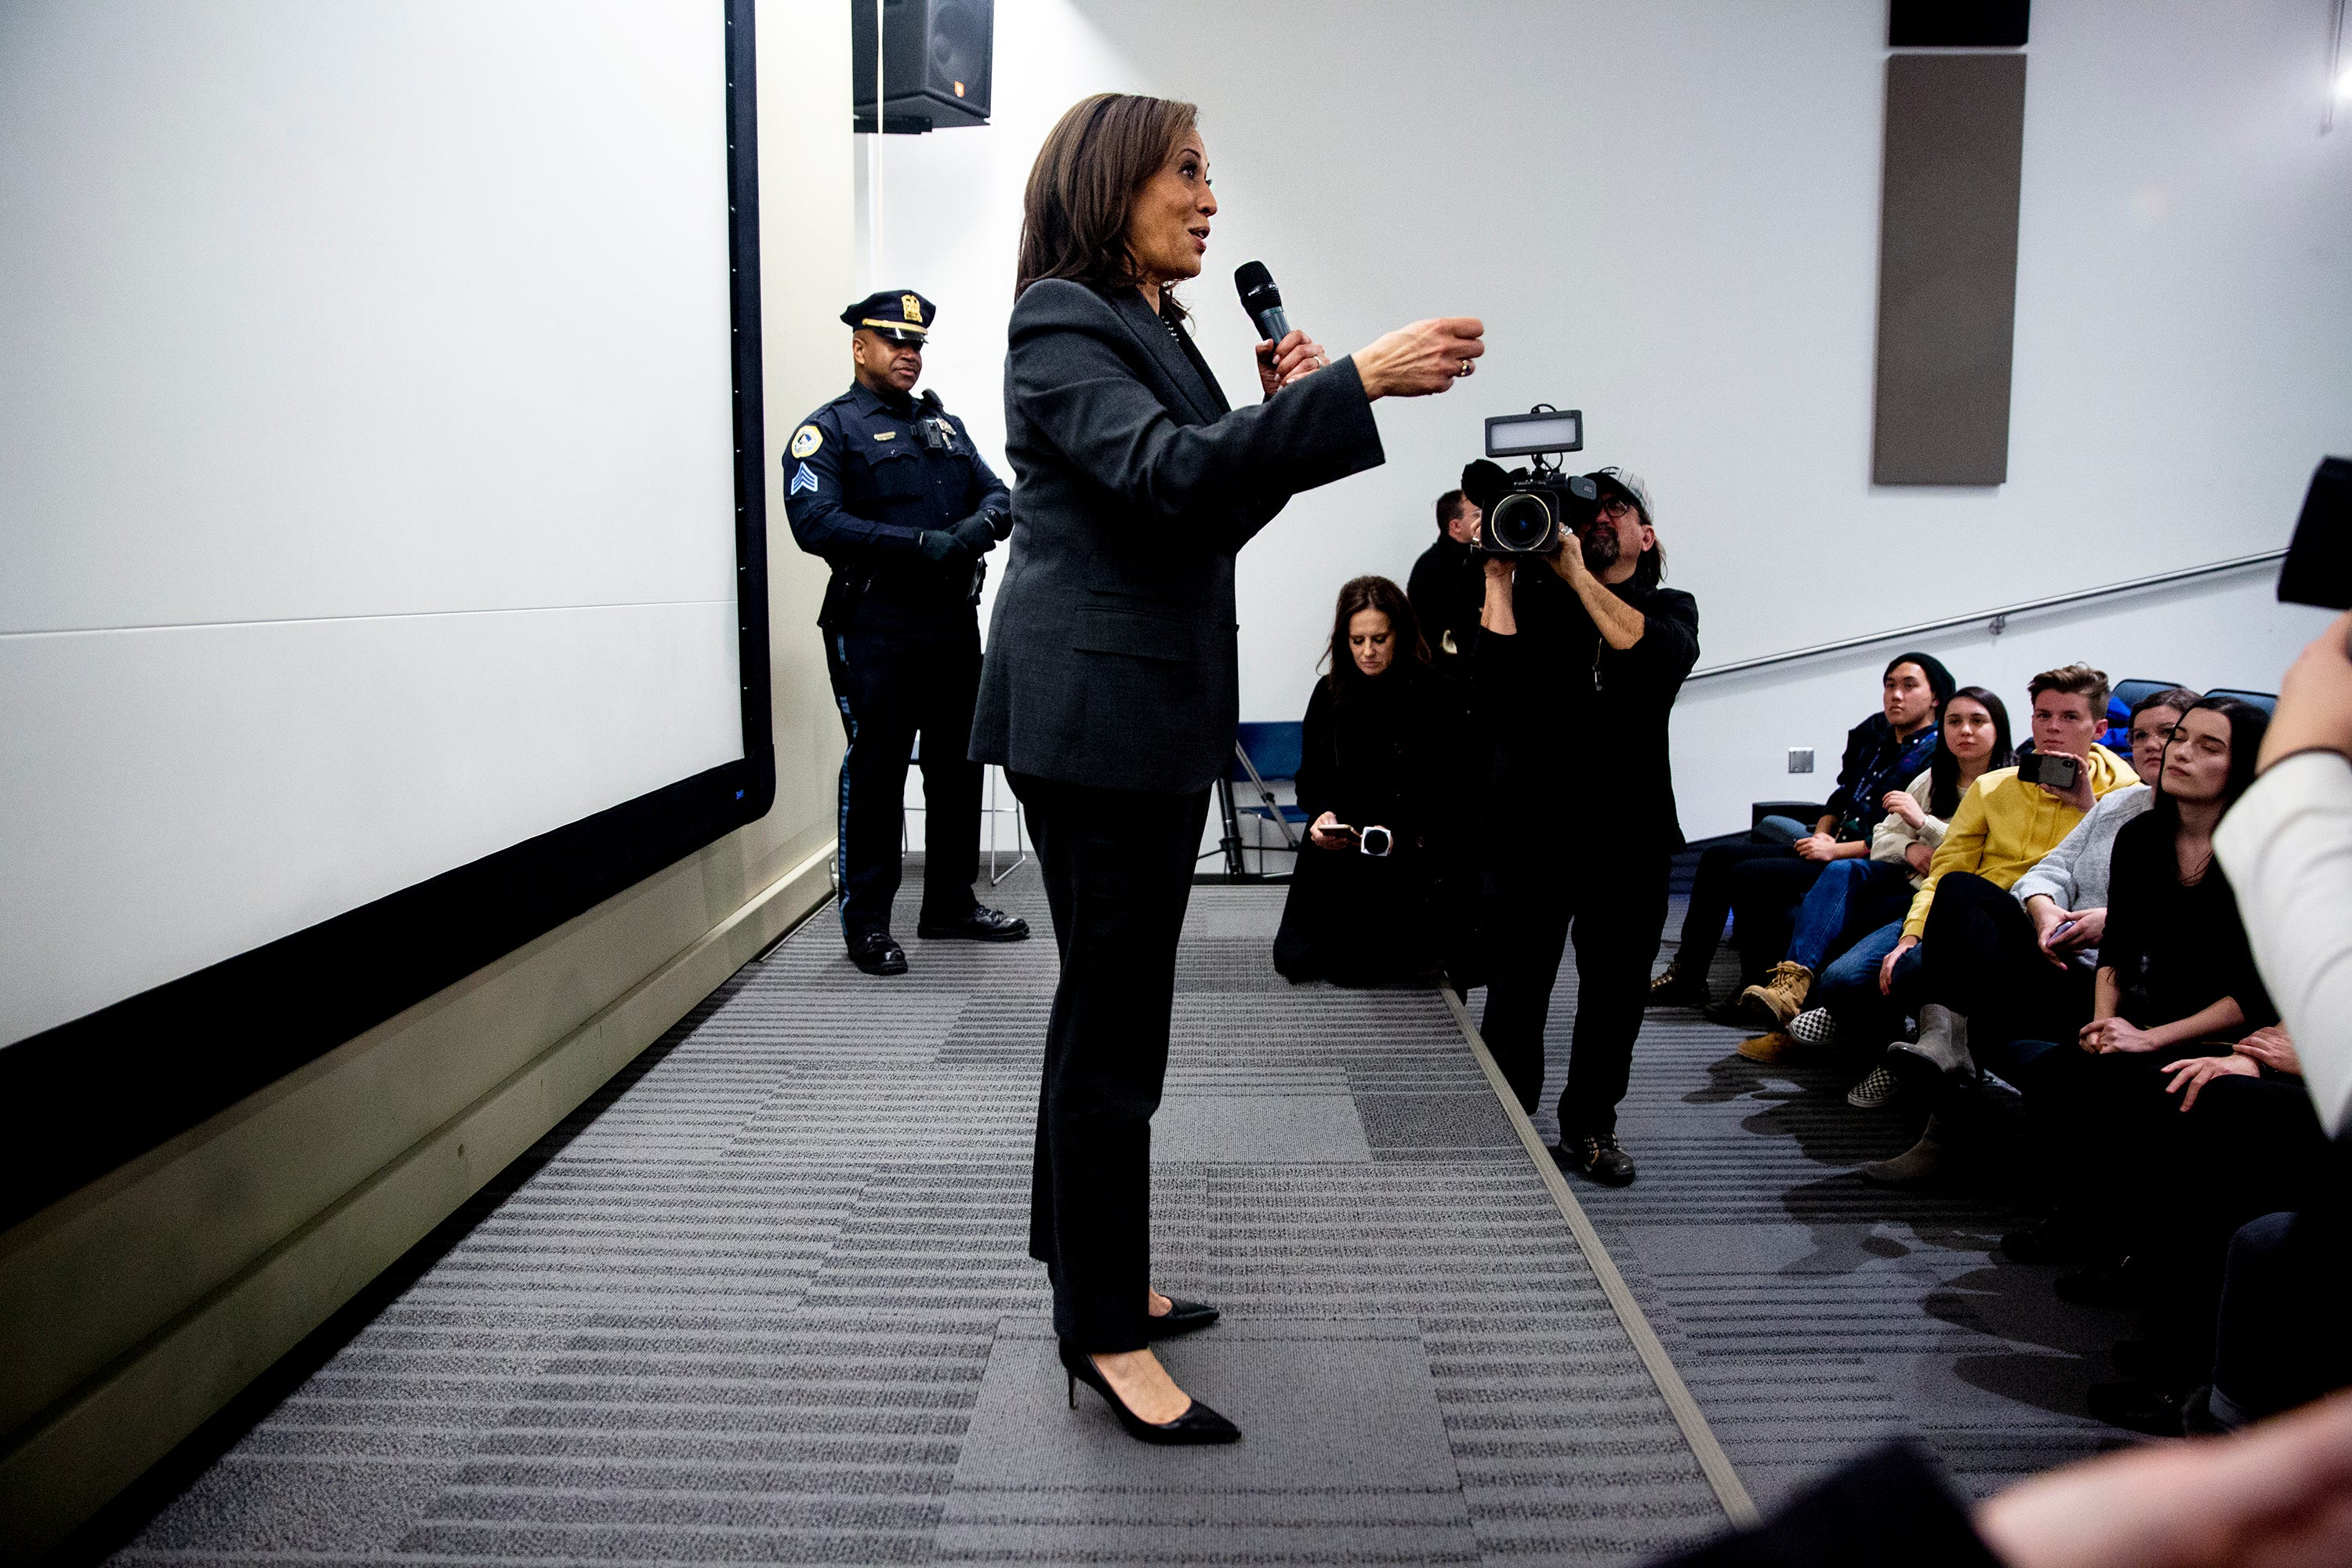 Kamala Harris Introduces Herself To Iowa Voters At Cnn Town Hall